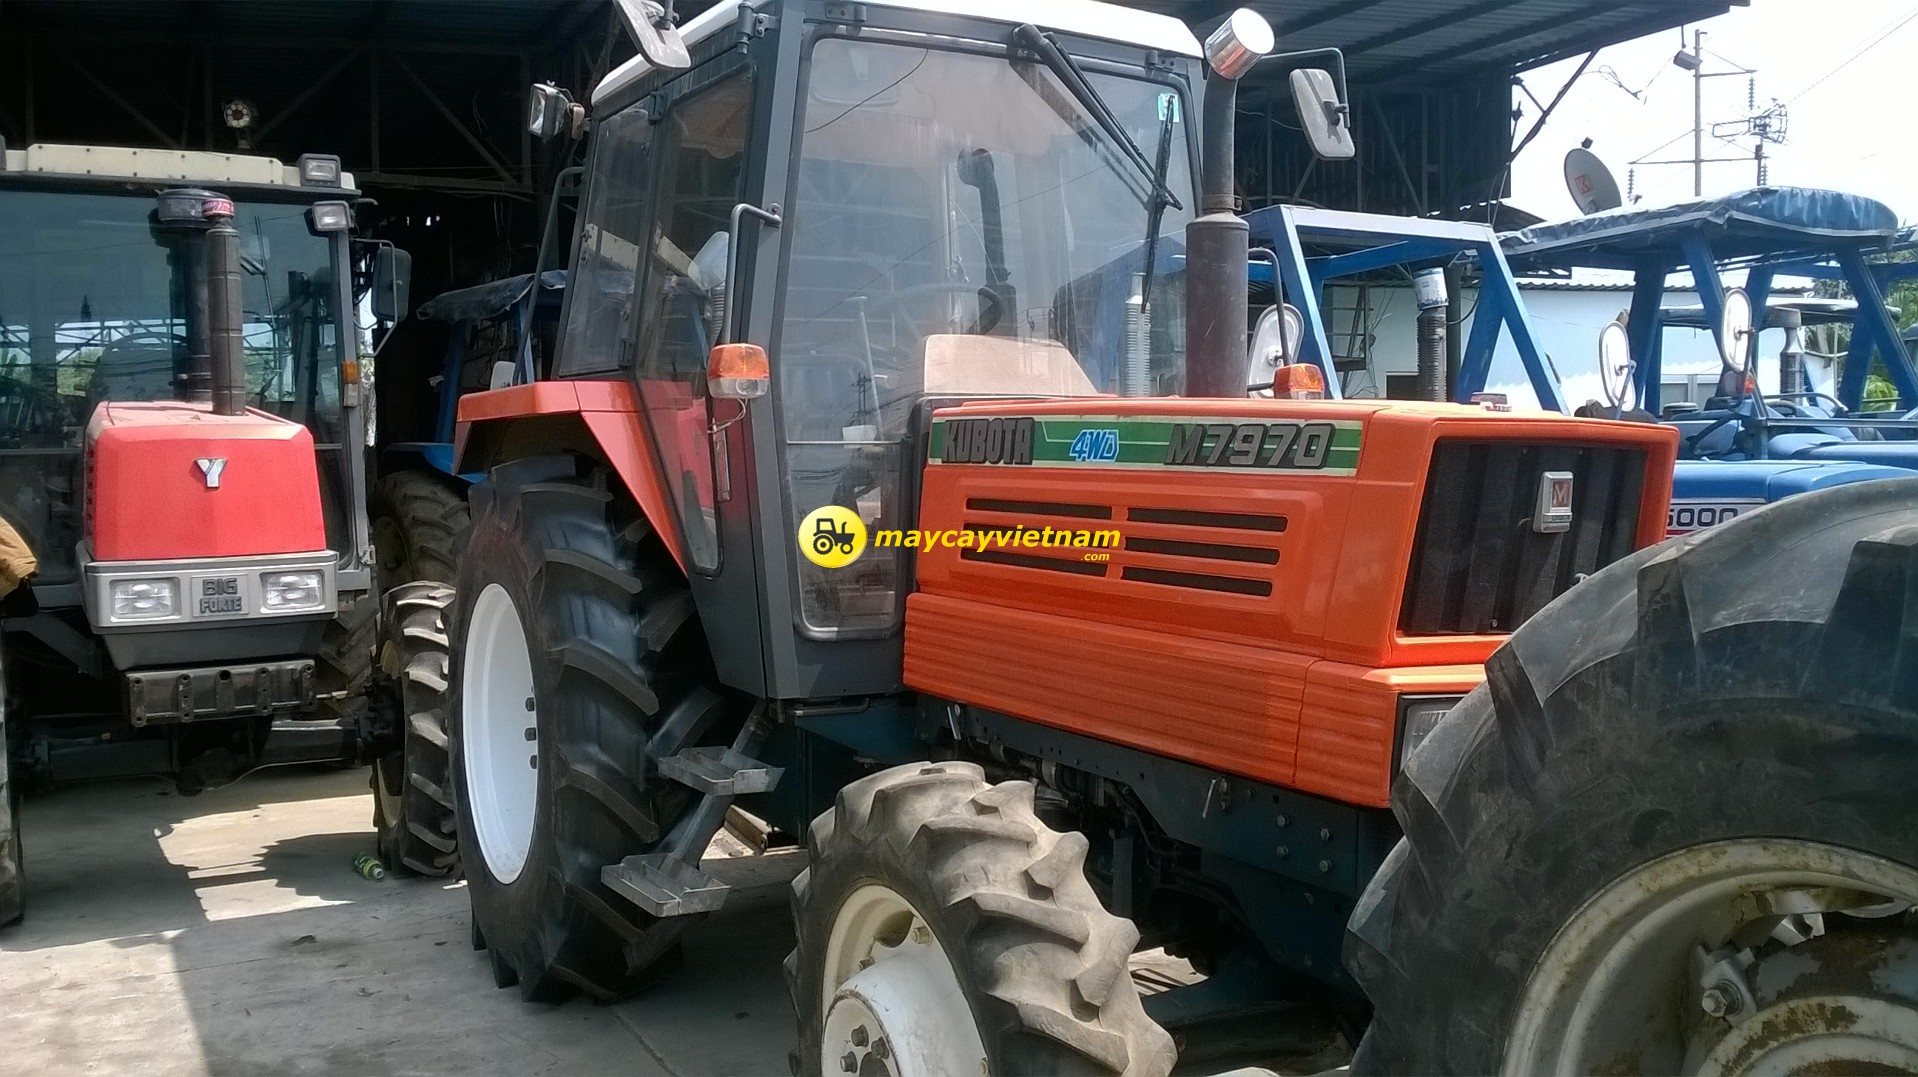 May Cay Kubota M7970